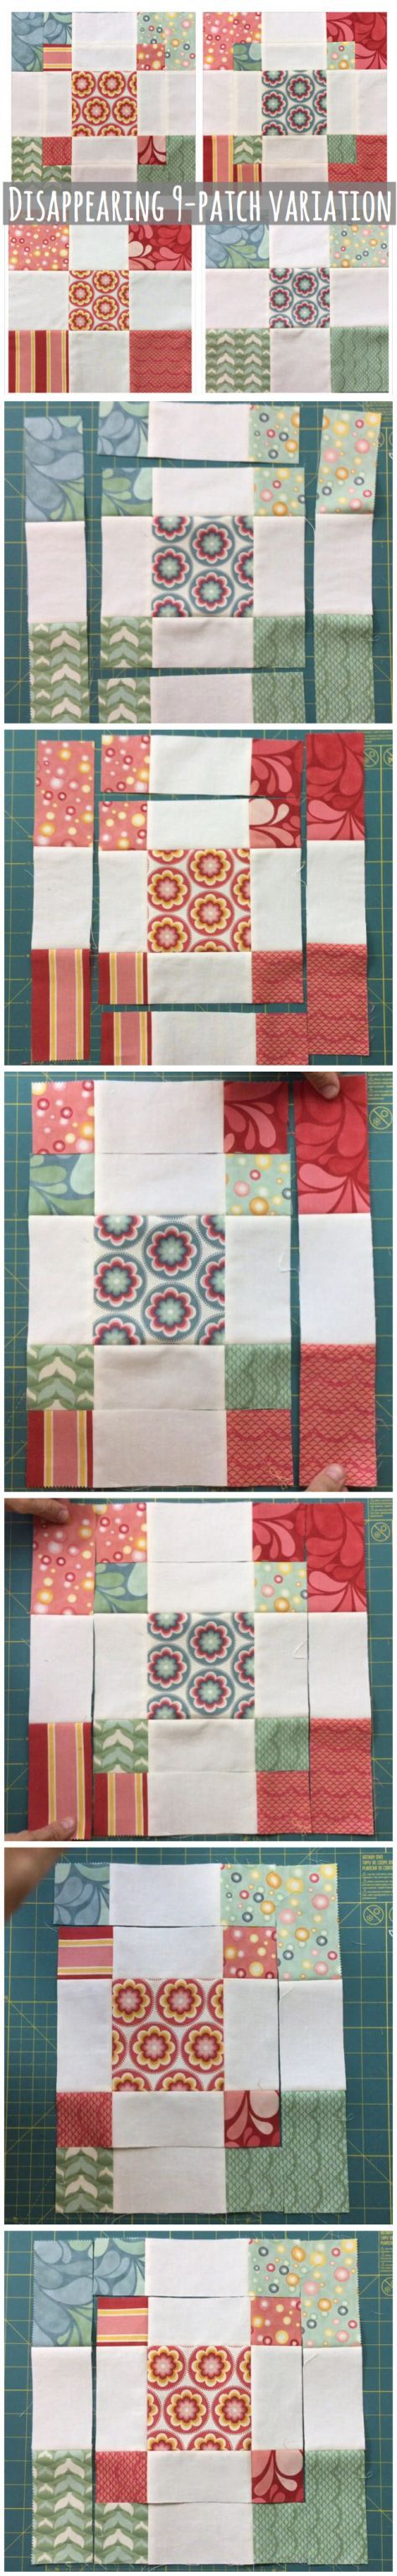 Variation on a disappearing 9-patch block and quilt tutorial